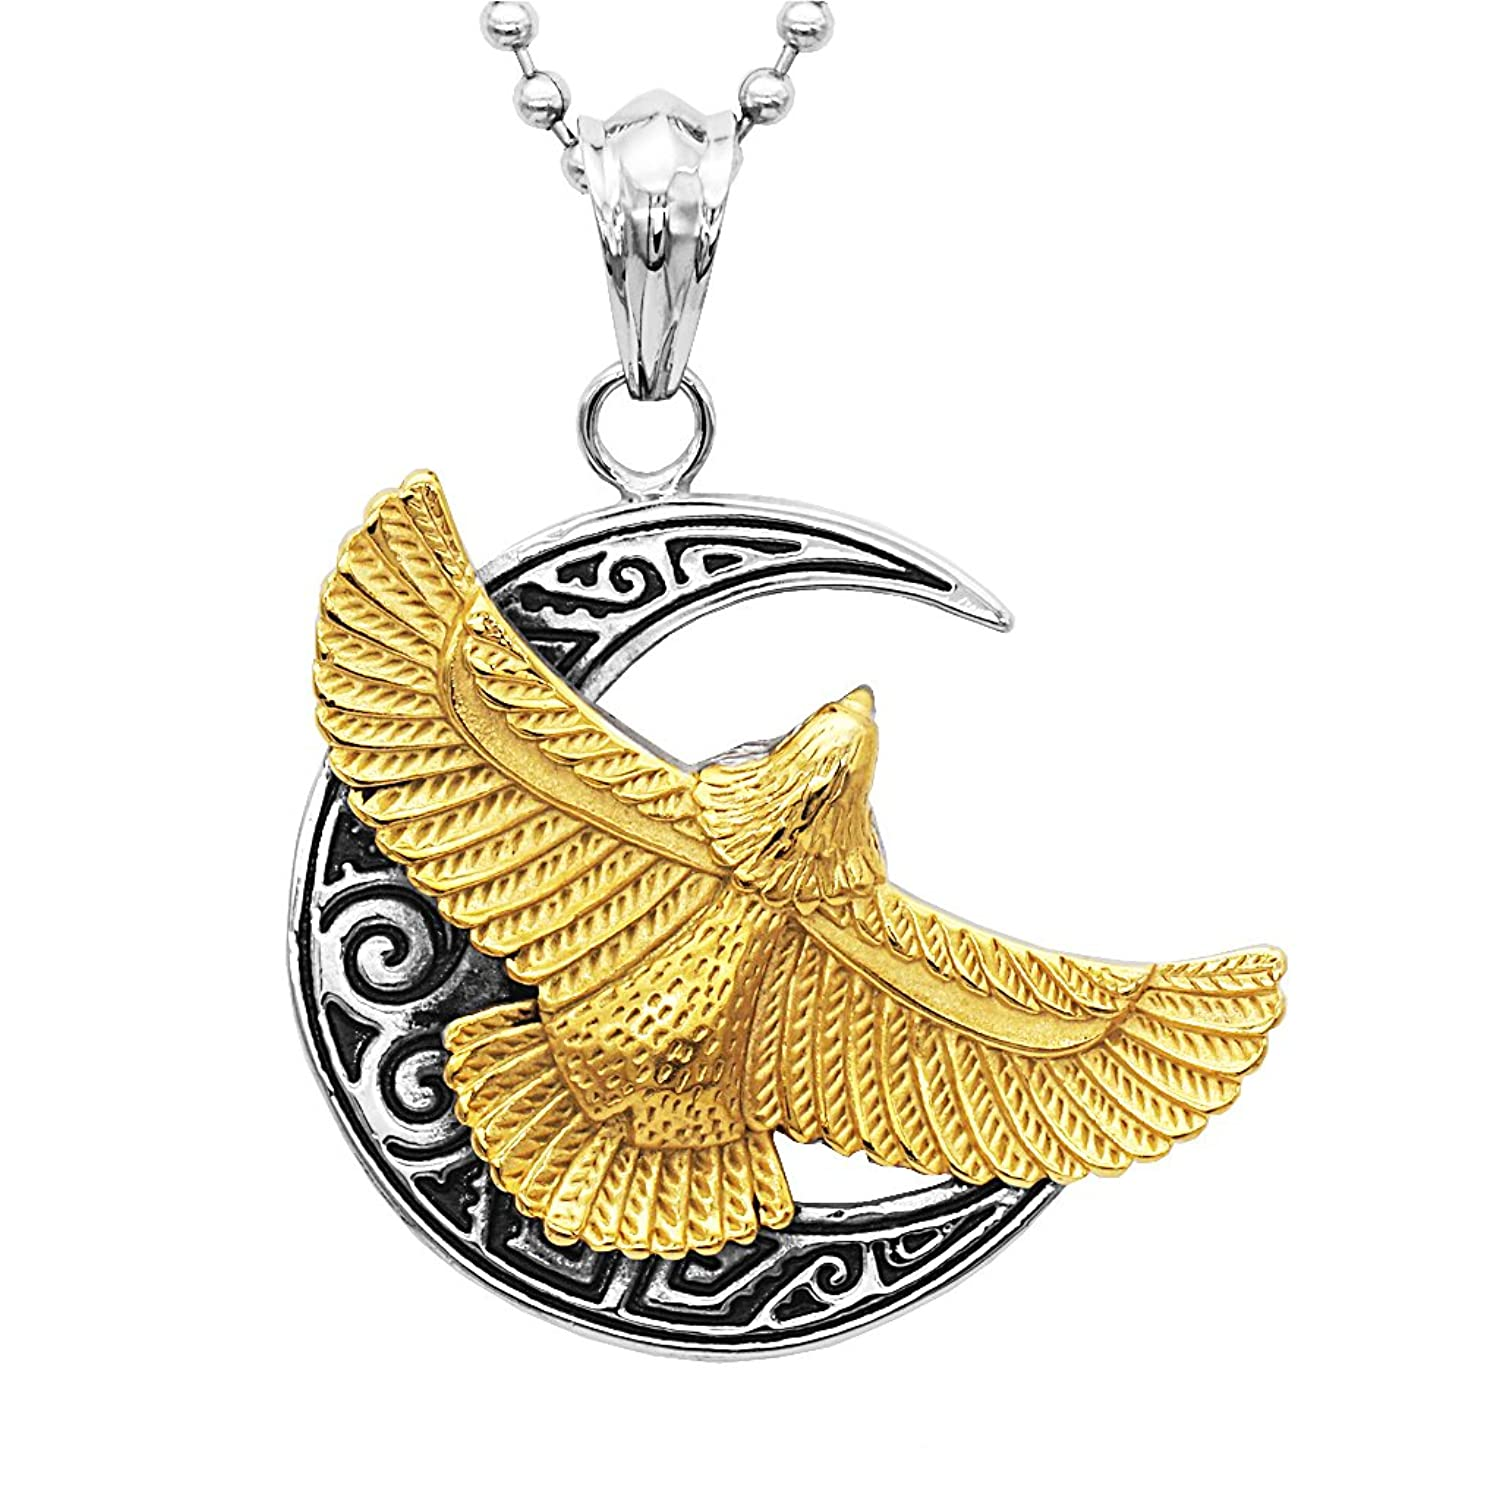 metallic s jewelry women lyst eagle king necklace silver studio in baby pendant